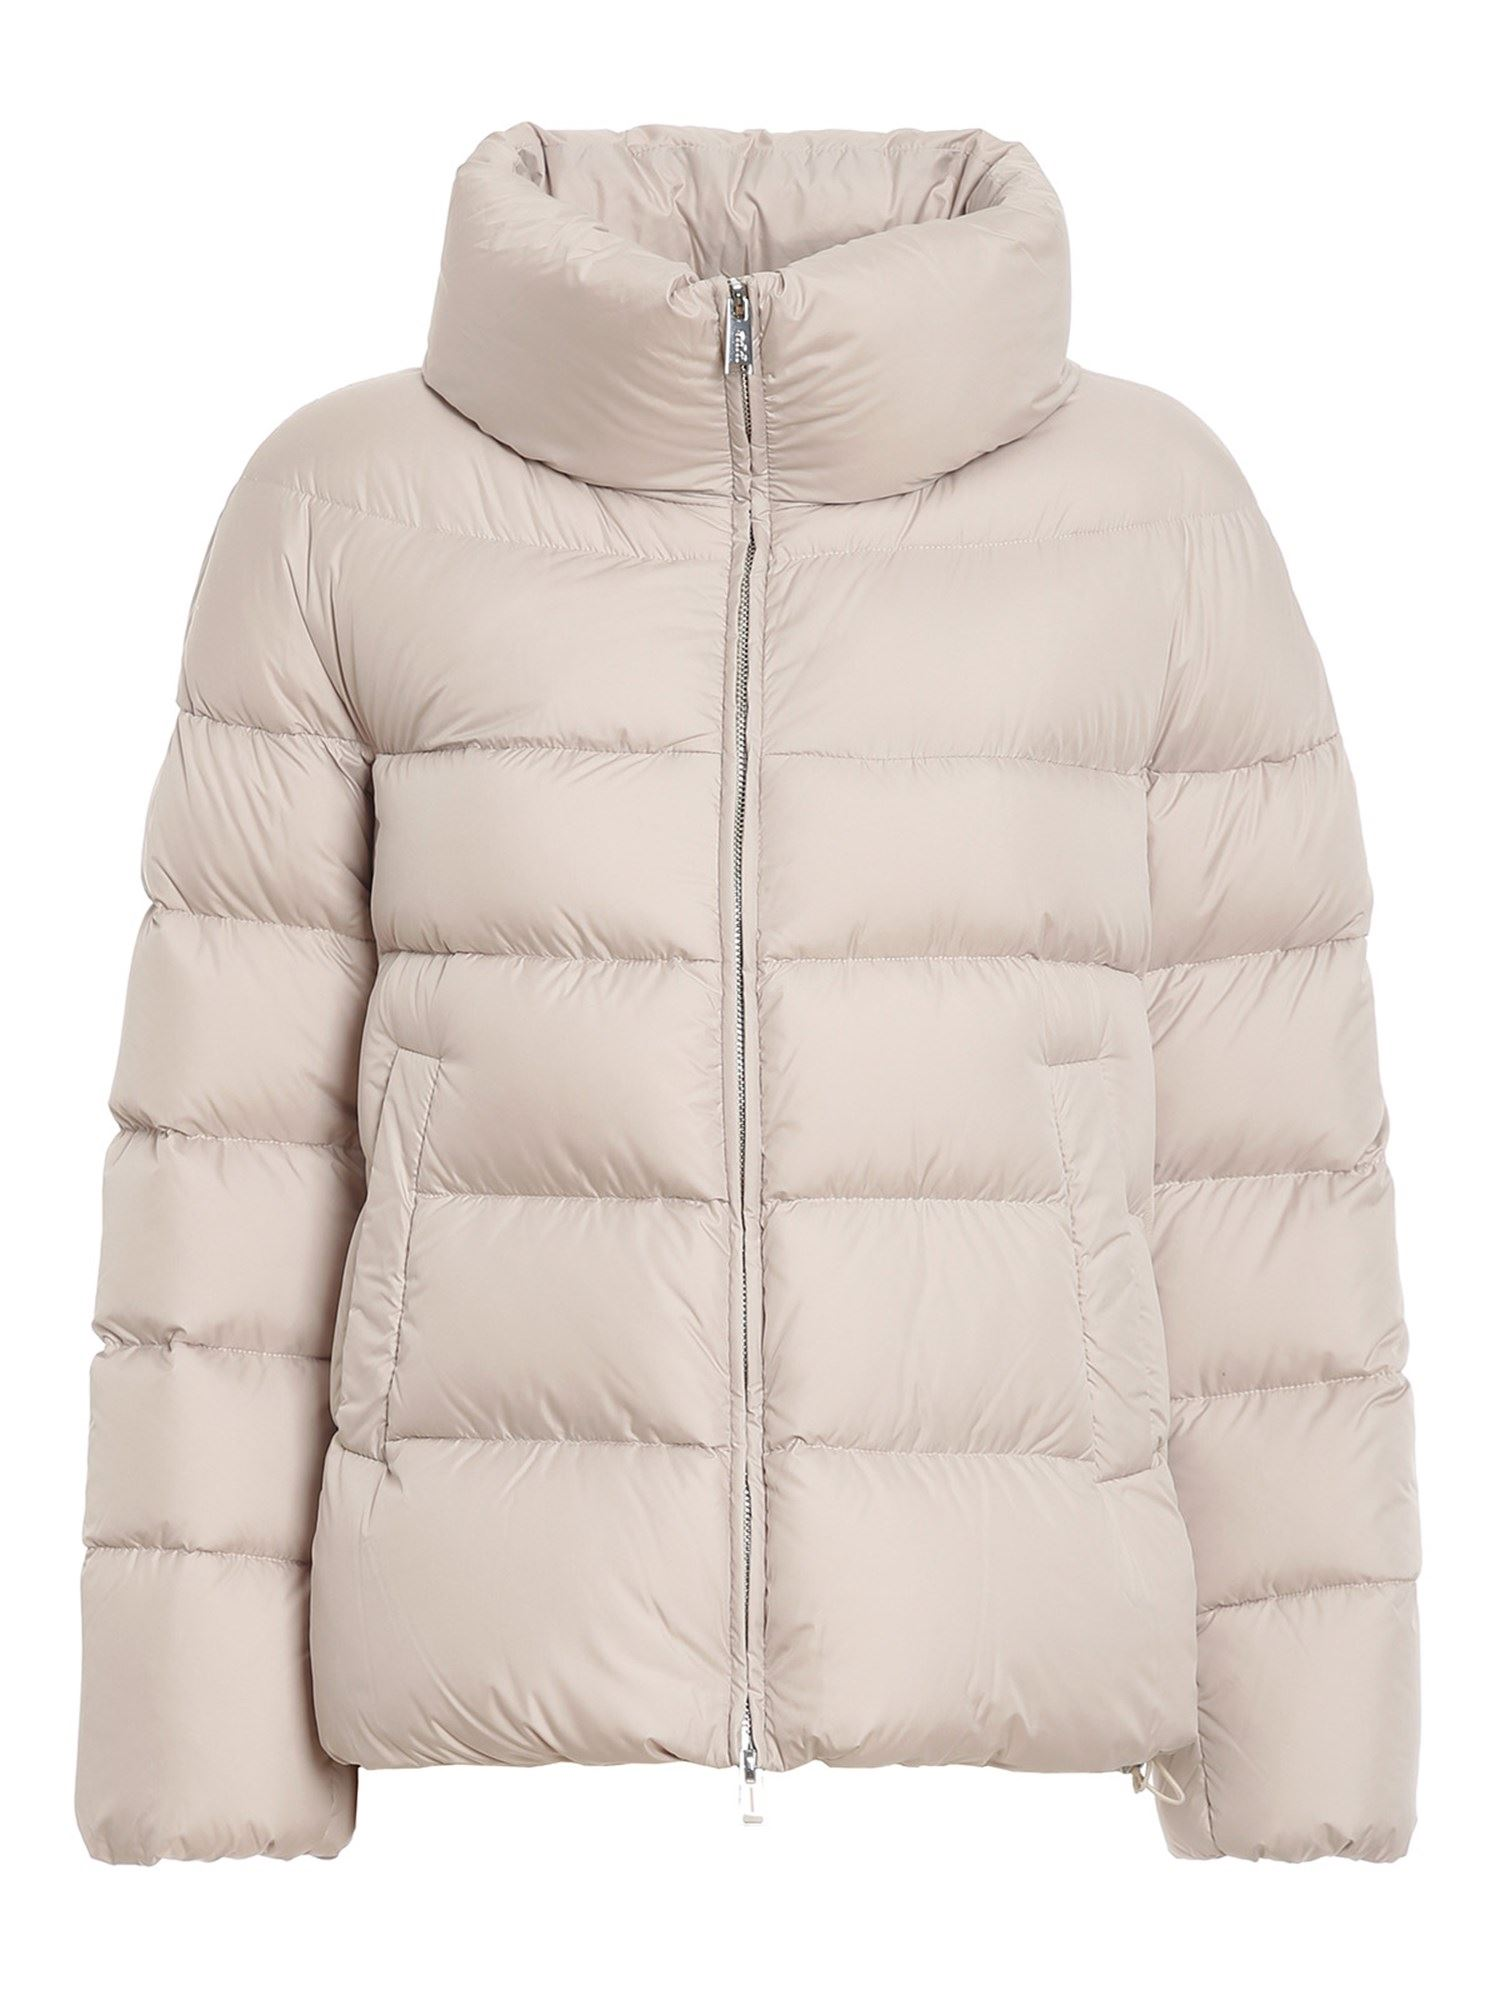 Add Downs ADD BEIGE QUILTED PUFFER JACKET